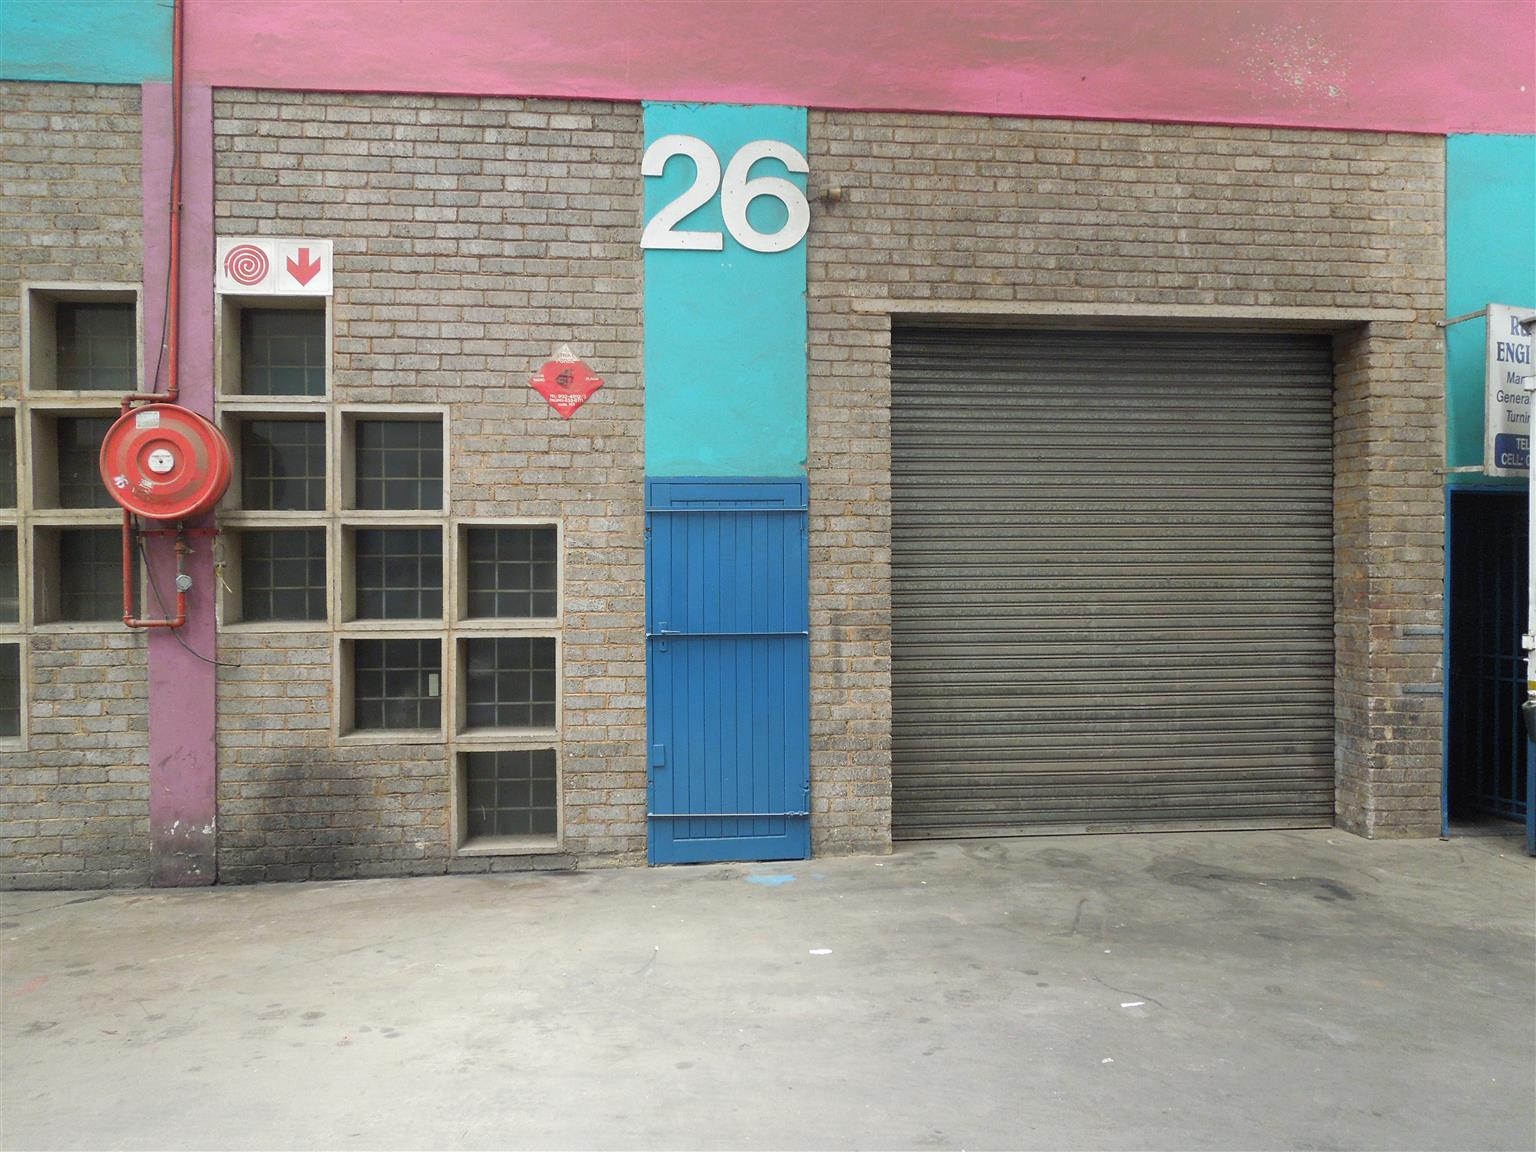 188m² Factory/Warehouse to let in the heart of Heriotdale.